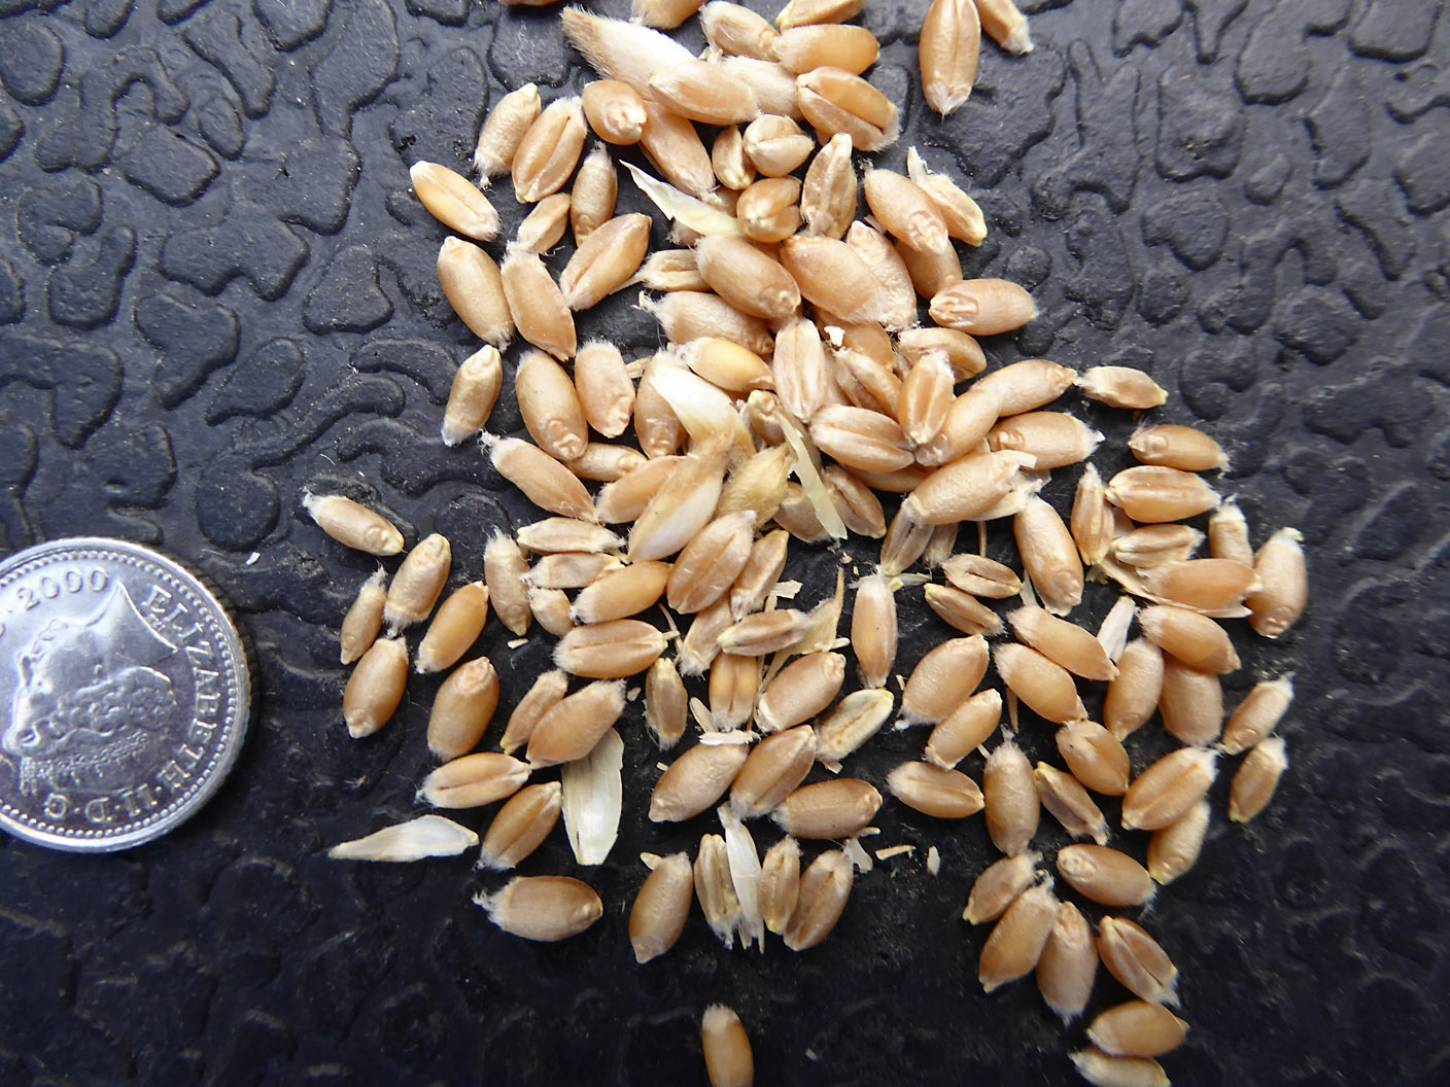 wheat identification images for <a href='http://brockwell-bake.org.uk/wheat/search.php?send=1&ID=109386&genes=1&bunt_a=1' target='_blank'>Red Stettin 13</a> and more <a href='http://www.wheat-gateway.org.uk/hub.php?ID=57' target='_blank'>info</a> - 6:47pm&nbsp;3<sup>rd</sup>&nbsp;Aug.&nbsp;'17